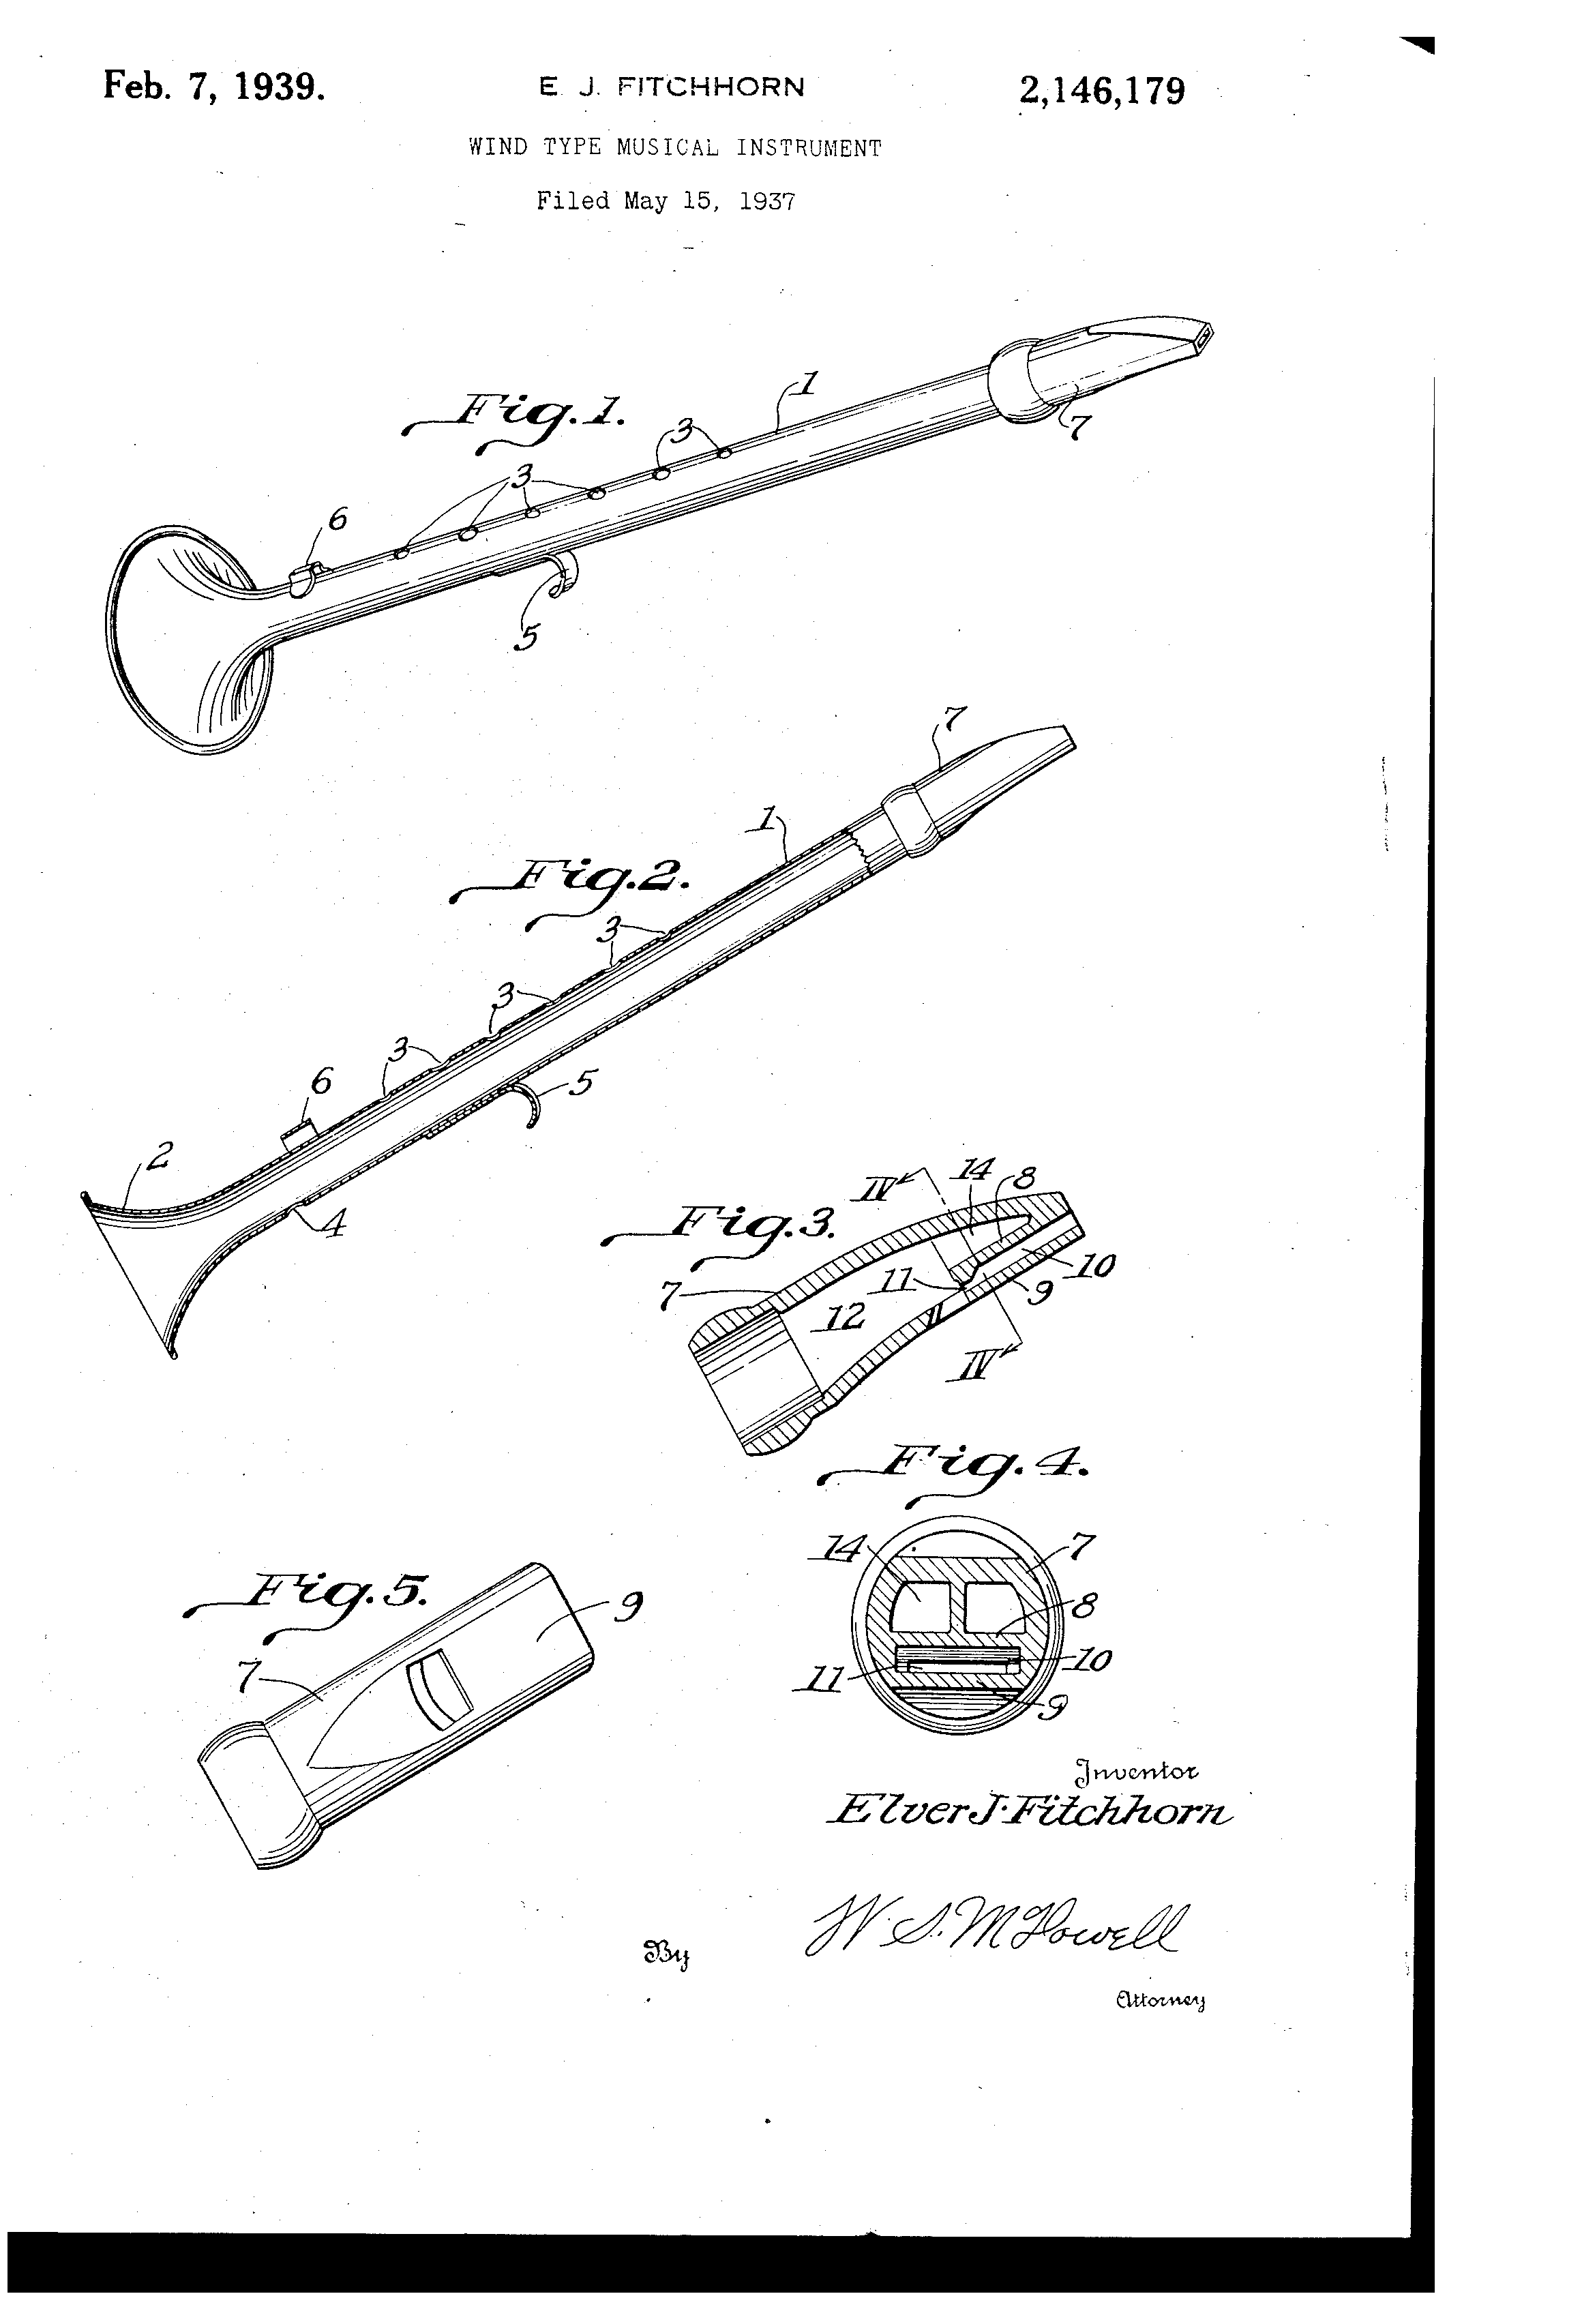 Saxette Patent Image, Feb 7, 1939, patent number 2,146,179, E.J. Fitchhorn